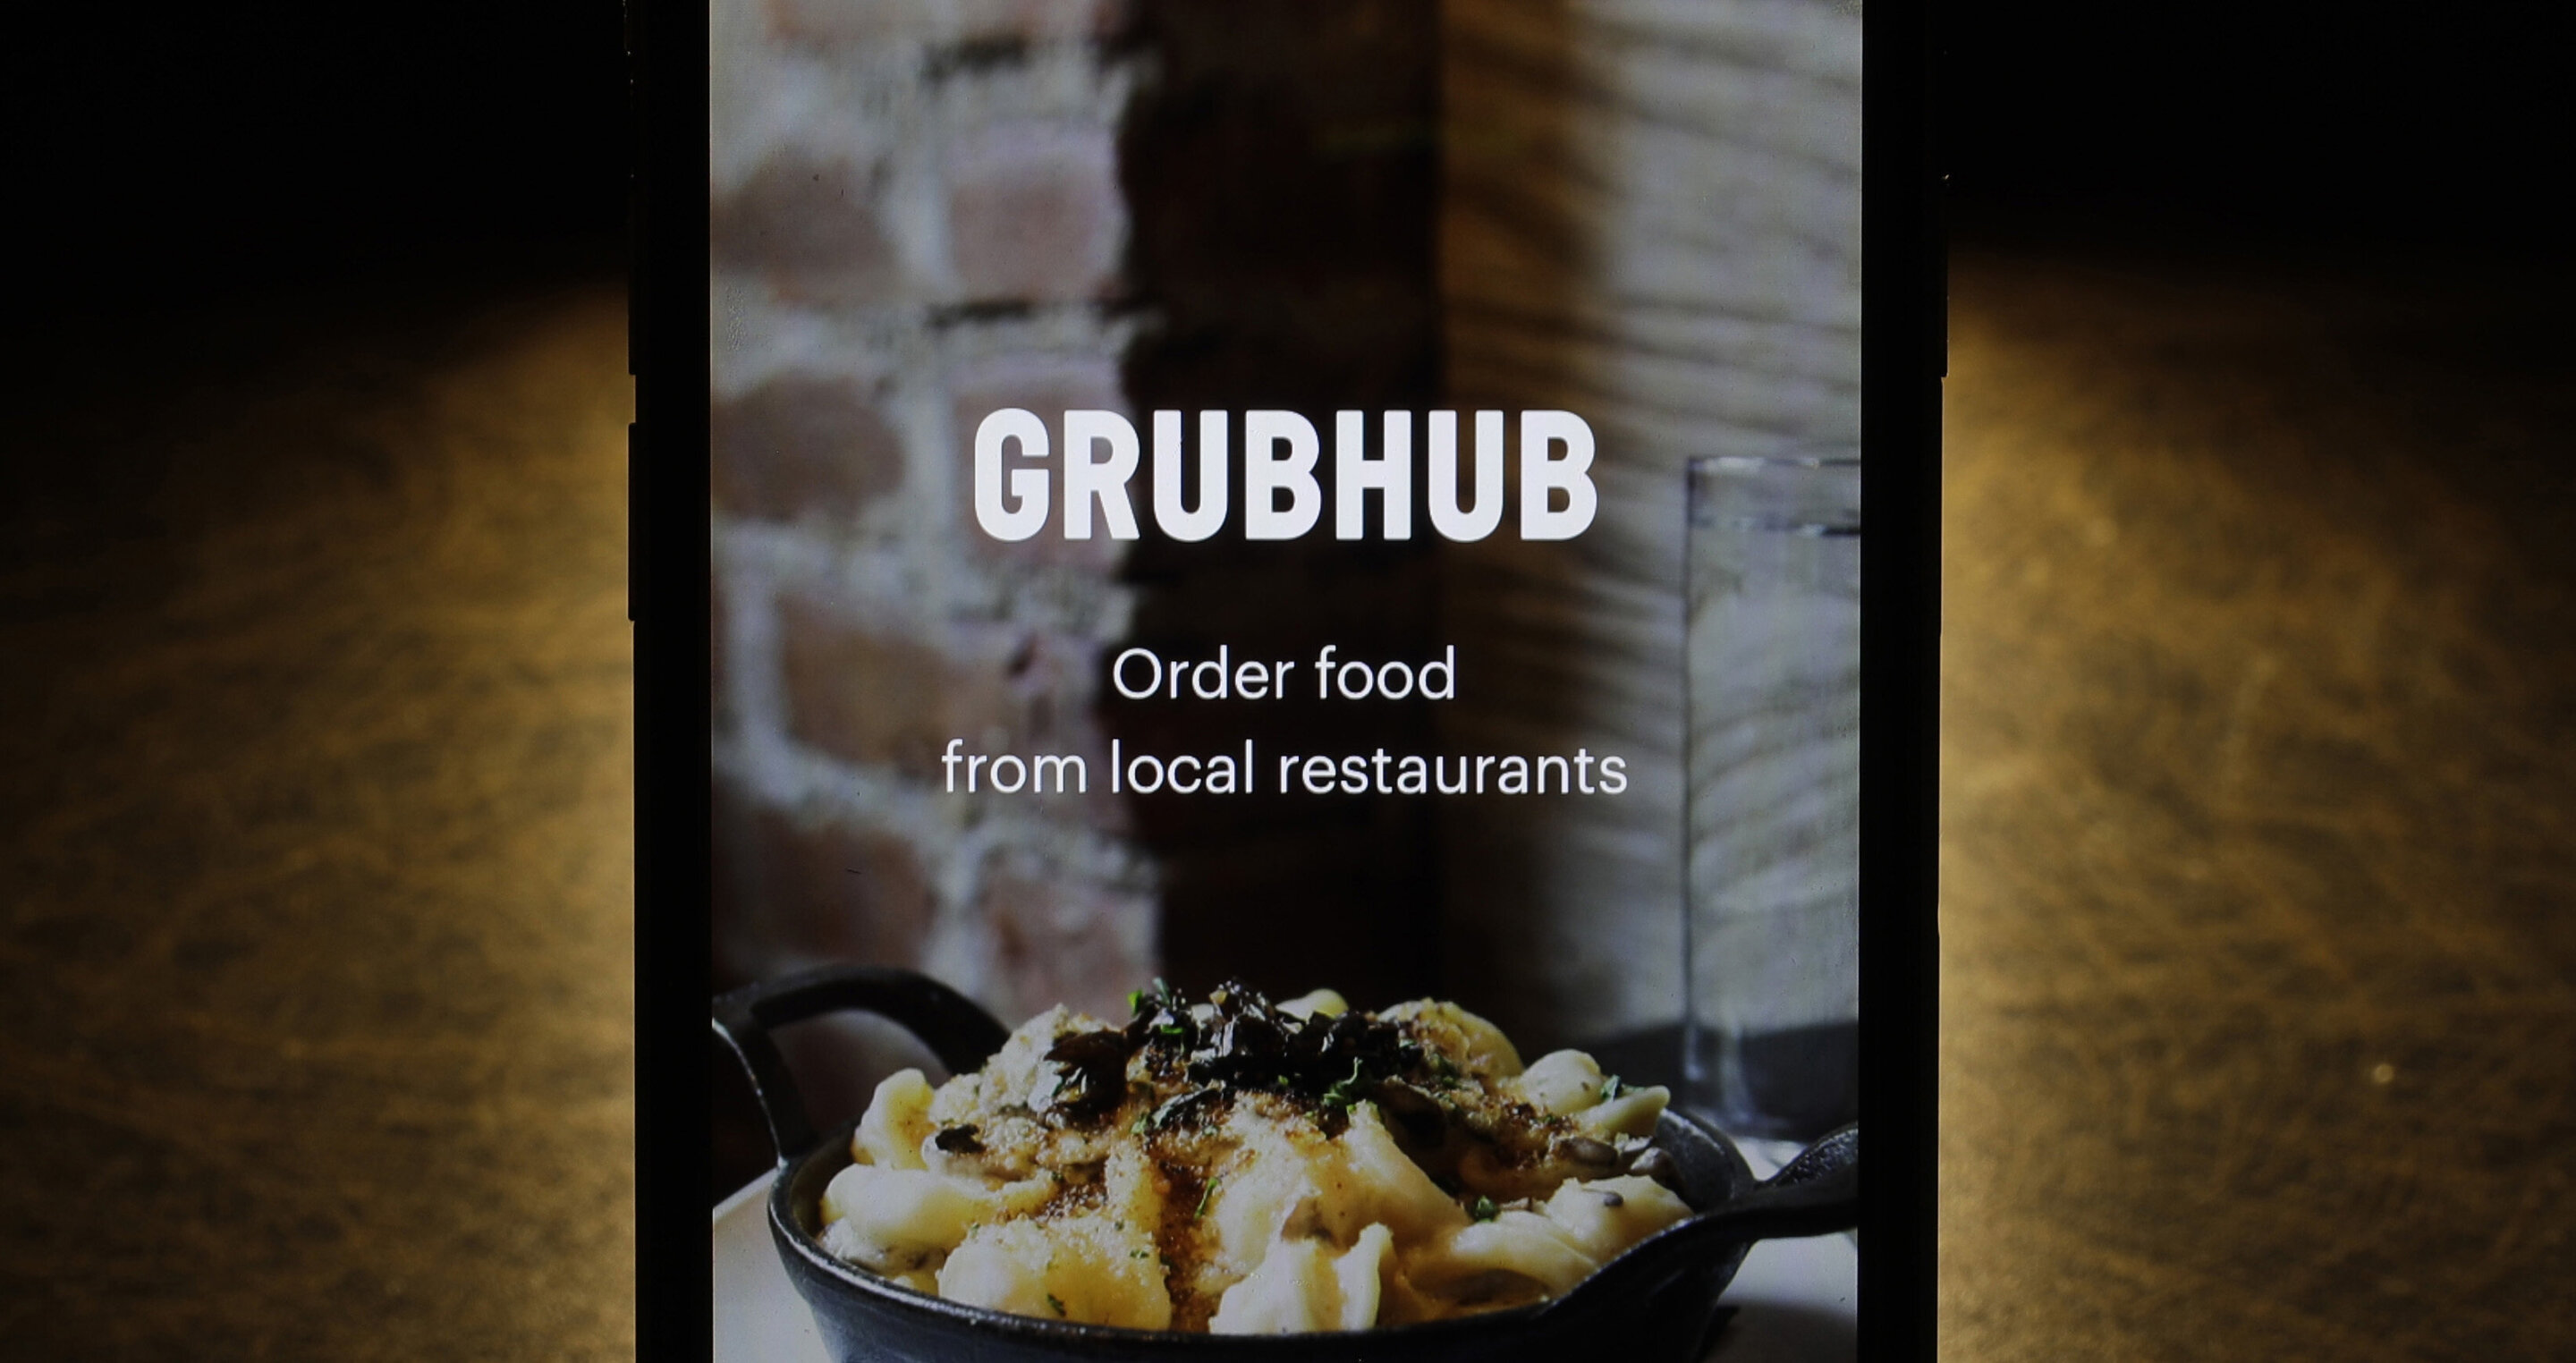 Restaurant Delivery Gets Easier For Most But Not Grubhub